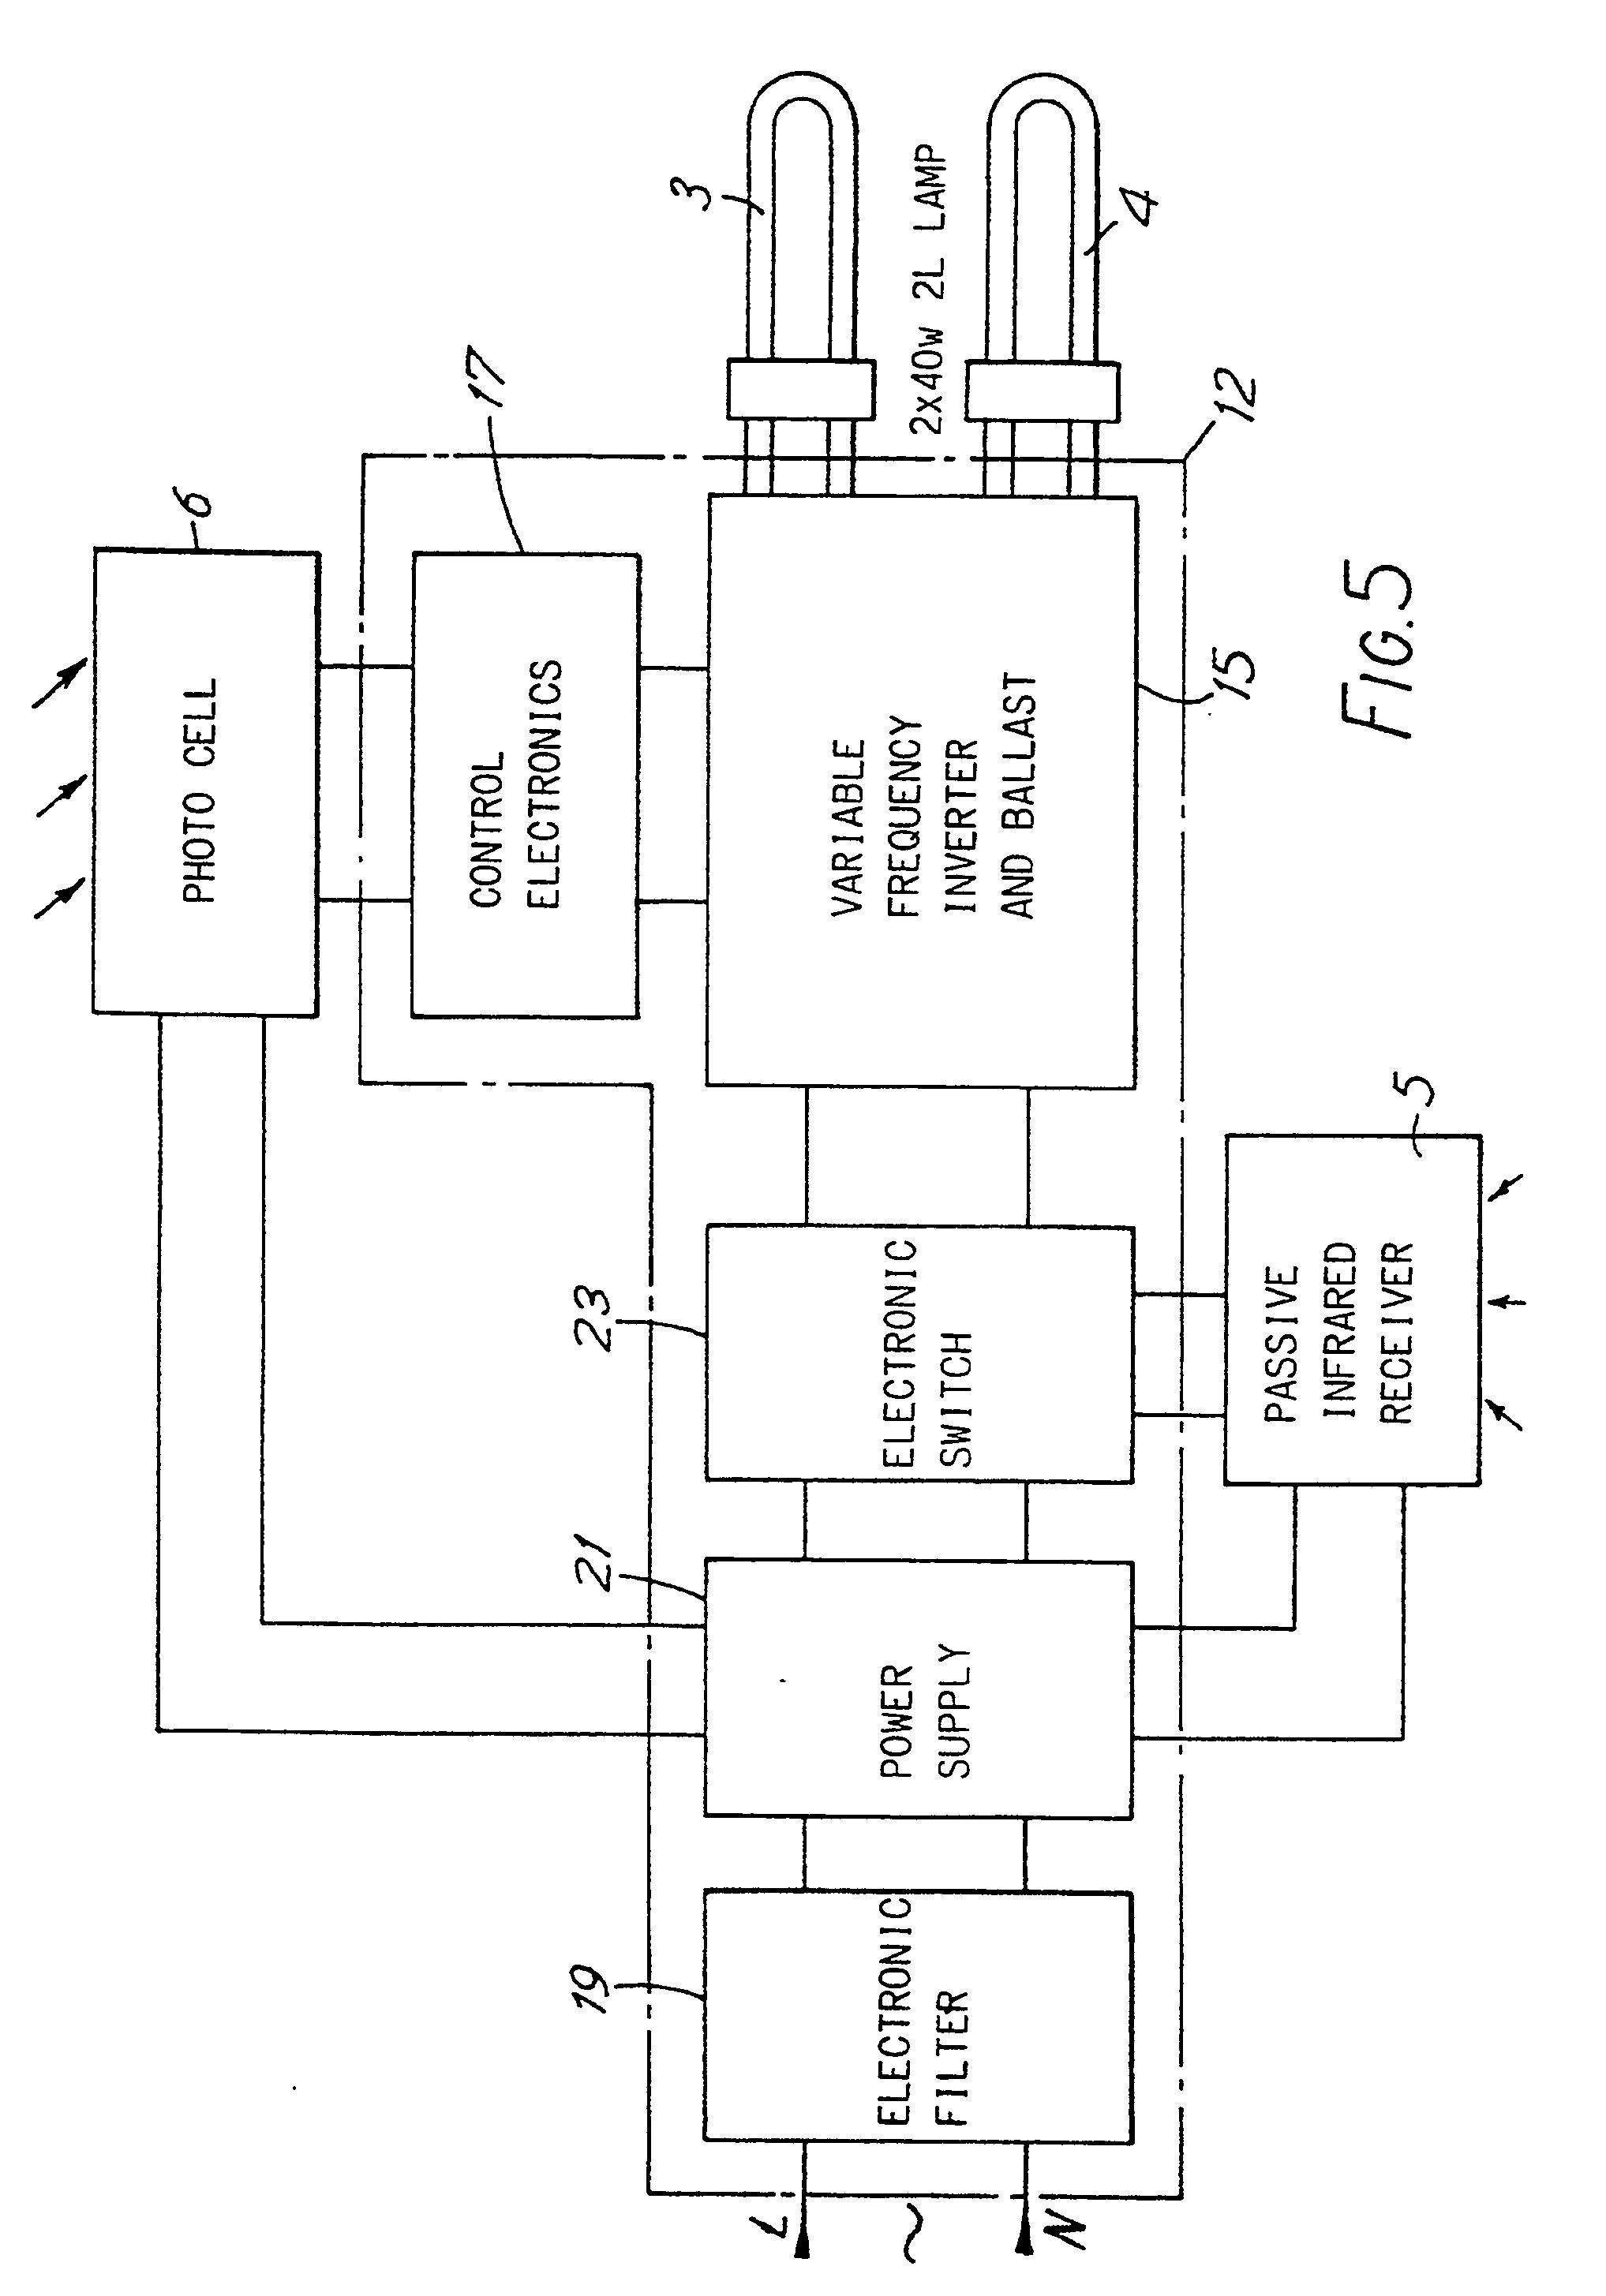 imgf0004 patent ep0447136a2 a method for automatic switching and control yun ba wiring diagram at reclaimingppi.co